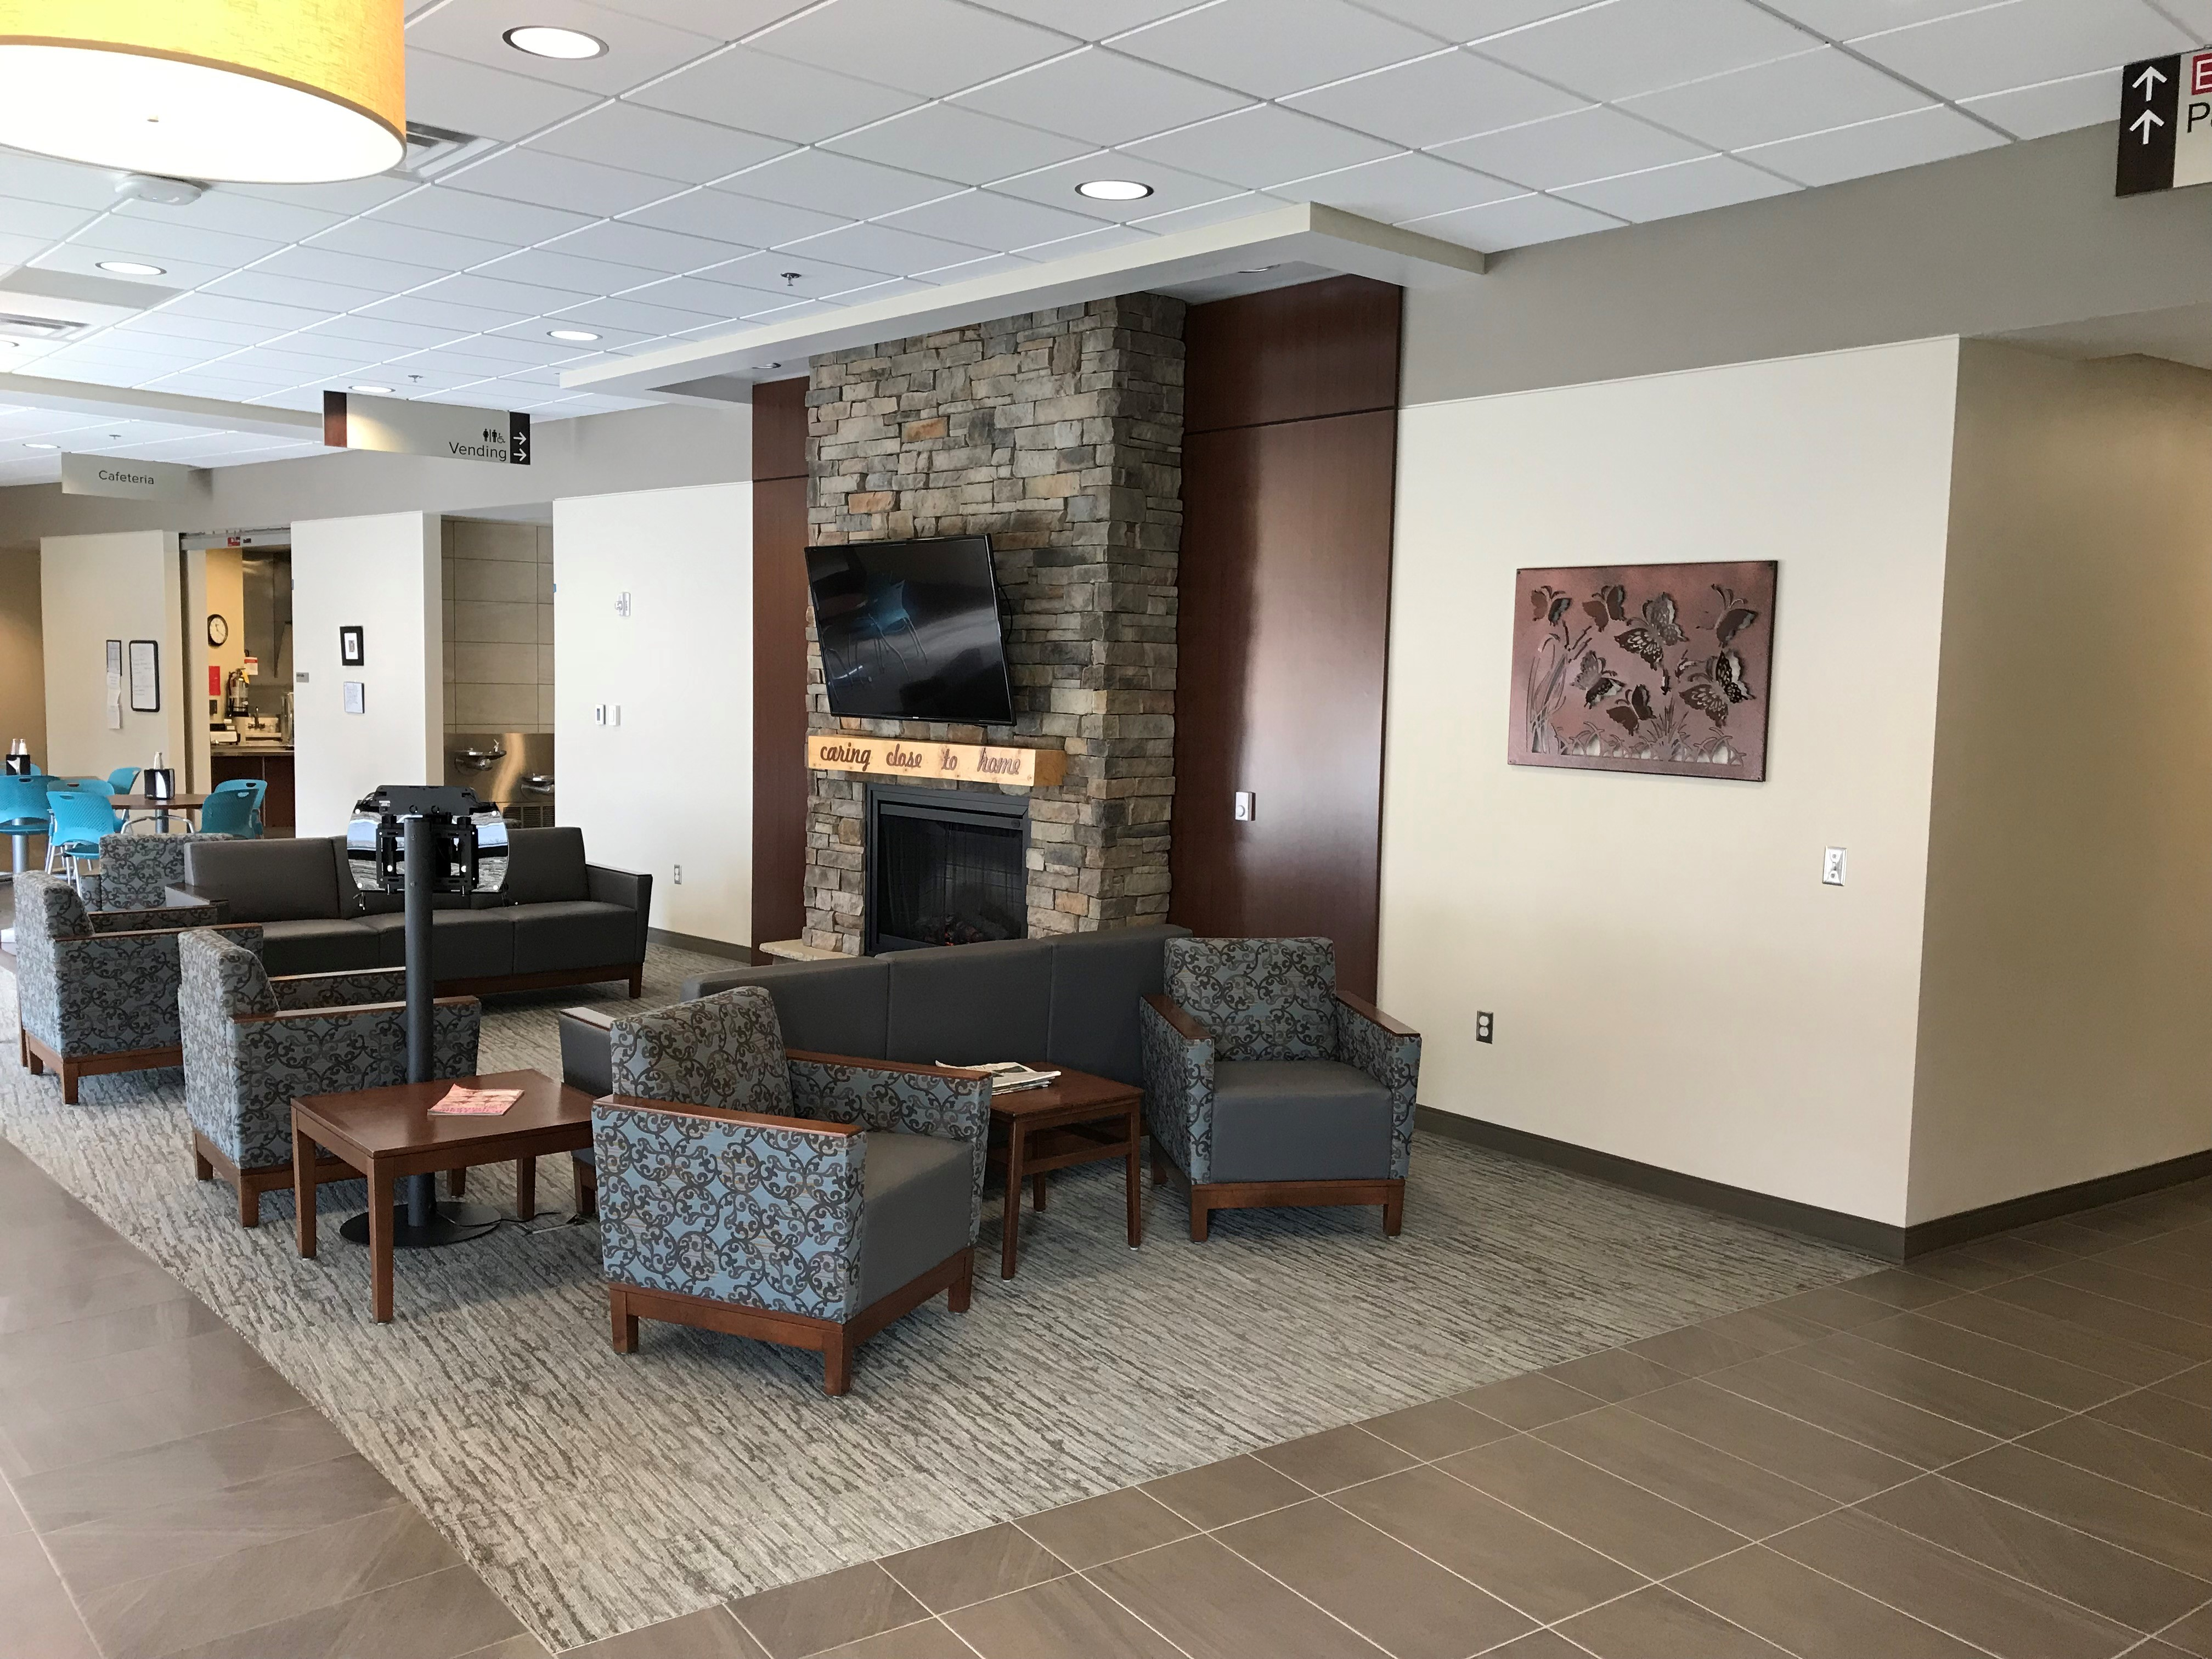 Hawarden Regional Healthcare facility waiting area and fireplace